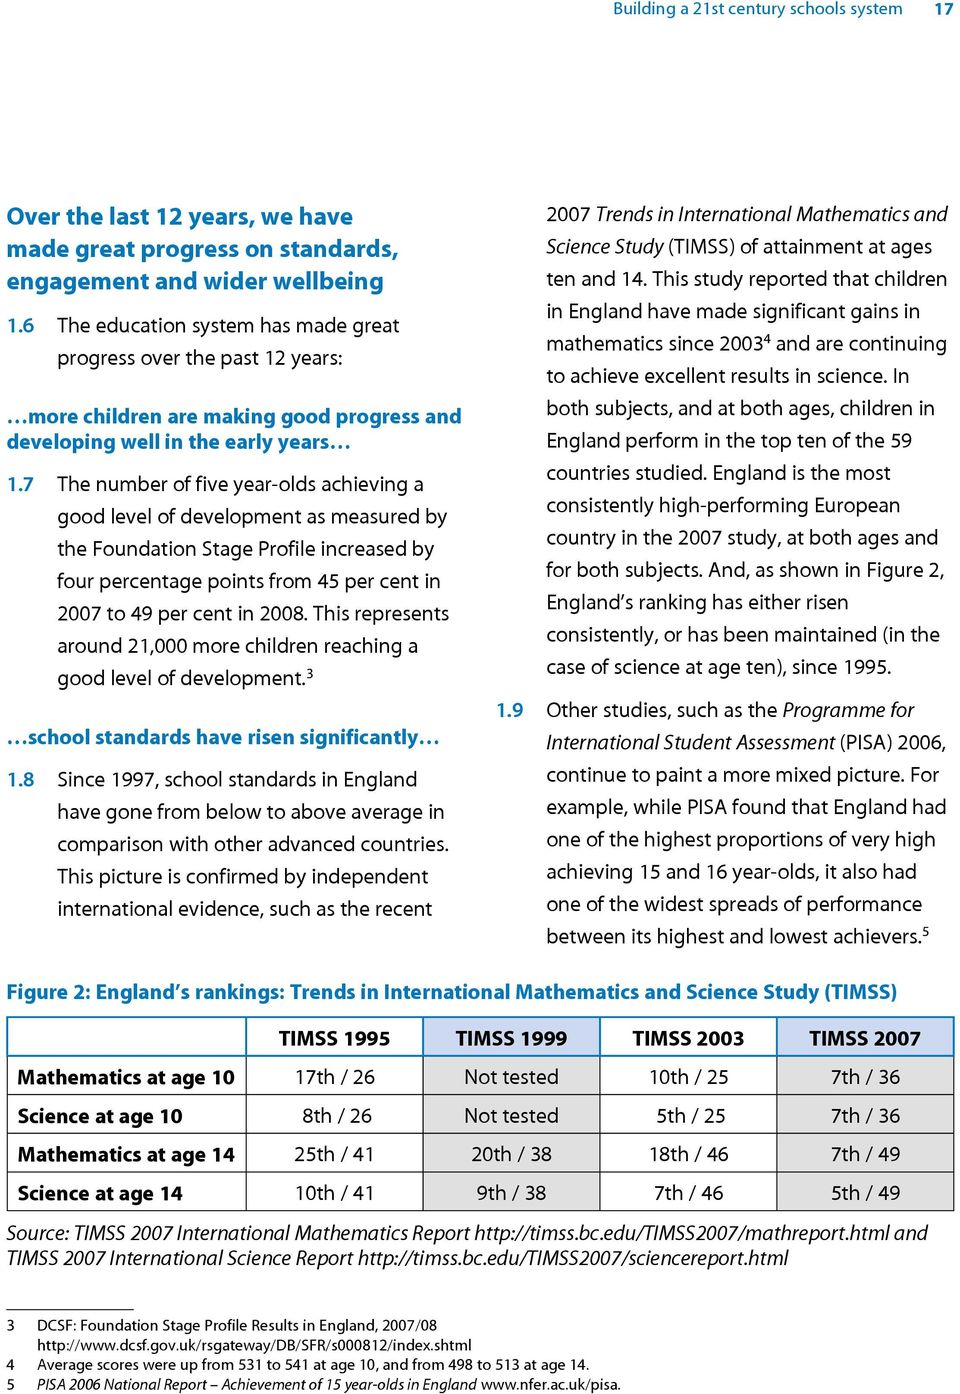 7 The number of five year-olds achieving a good level of development as measured by the Foundation Stage Profile increased by four percentage points from 45 per cent in 2007 to 49 per cent in 2008.